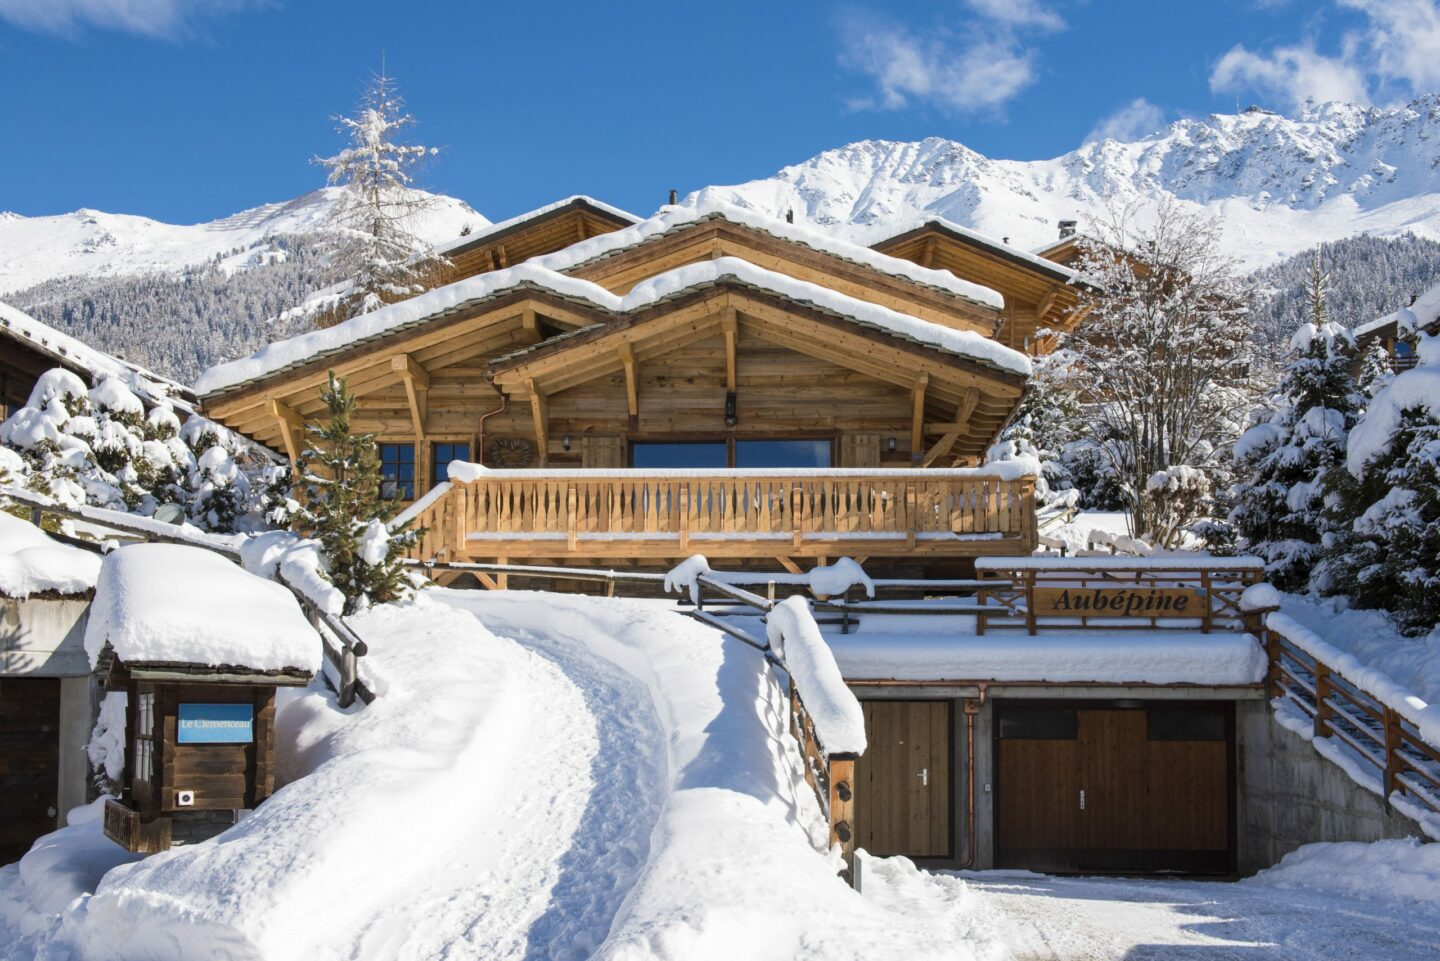 Exterior with snow and Atlas ski slopes in background at Chalet Daphne in Verbier